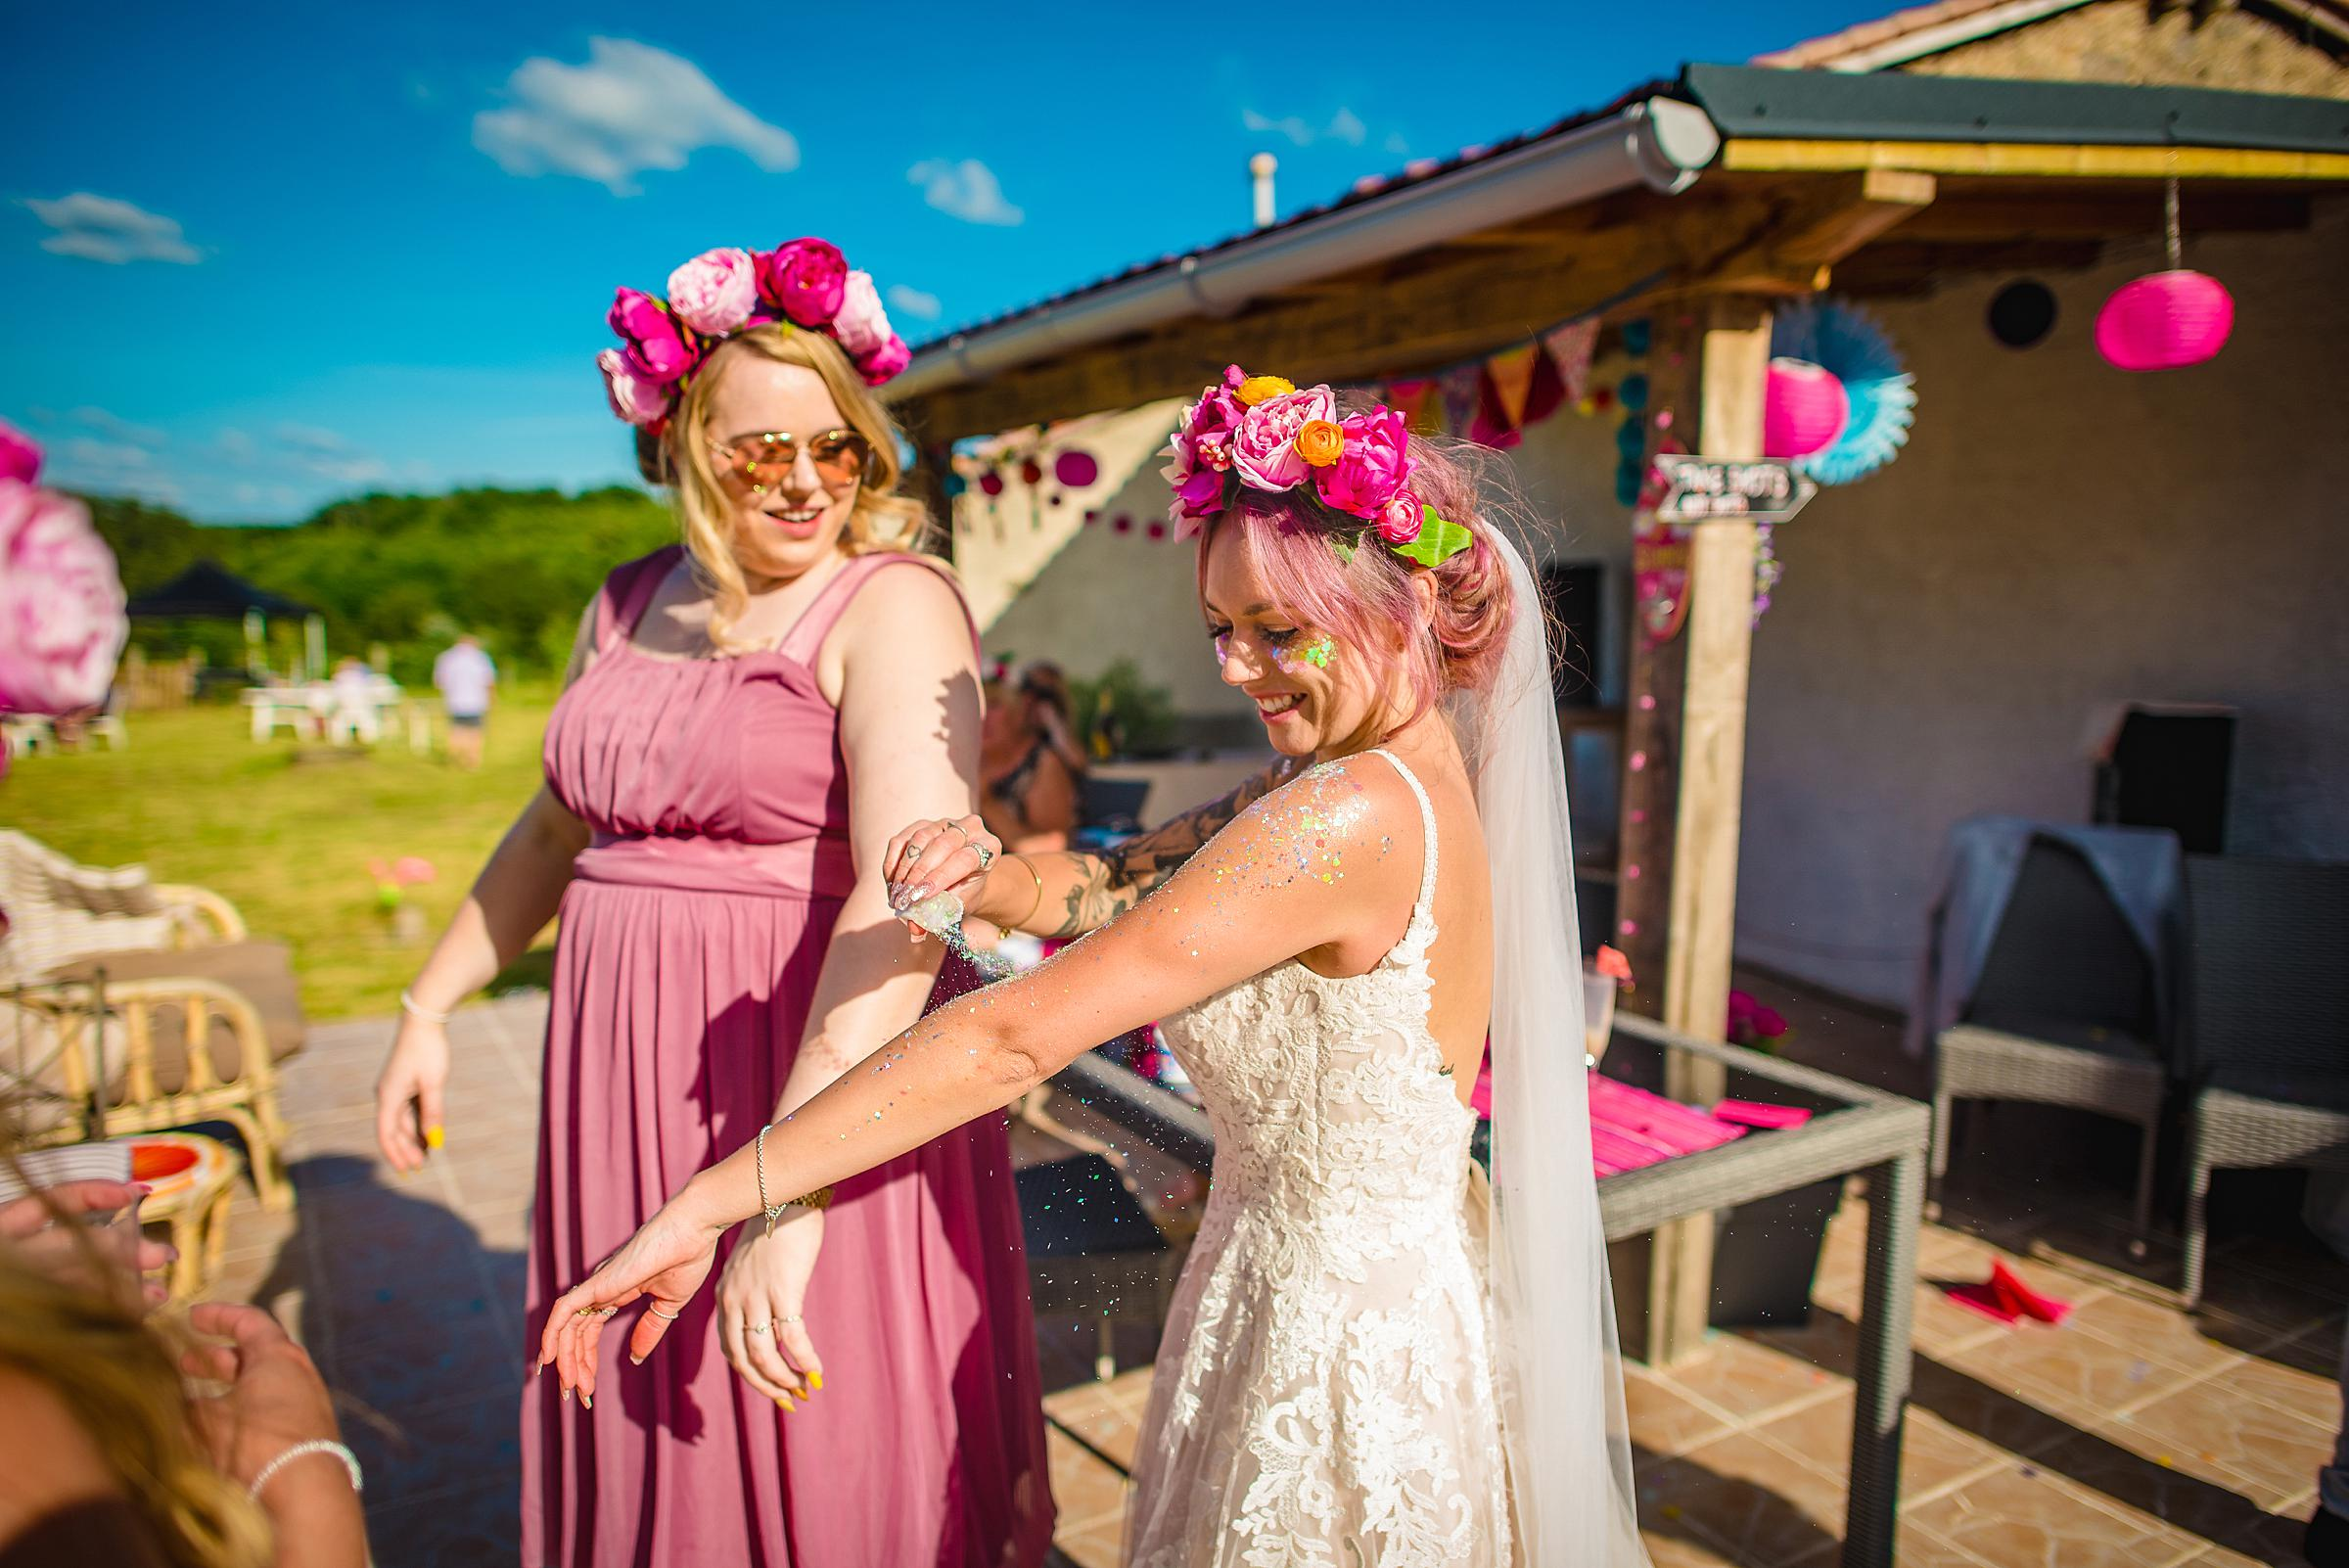 Back Garden Festival Wedding in France - Glittered Bride